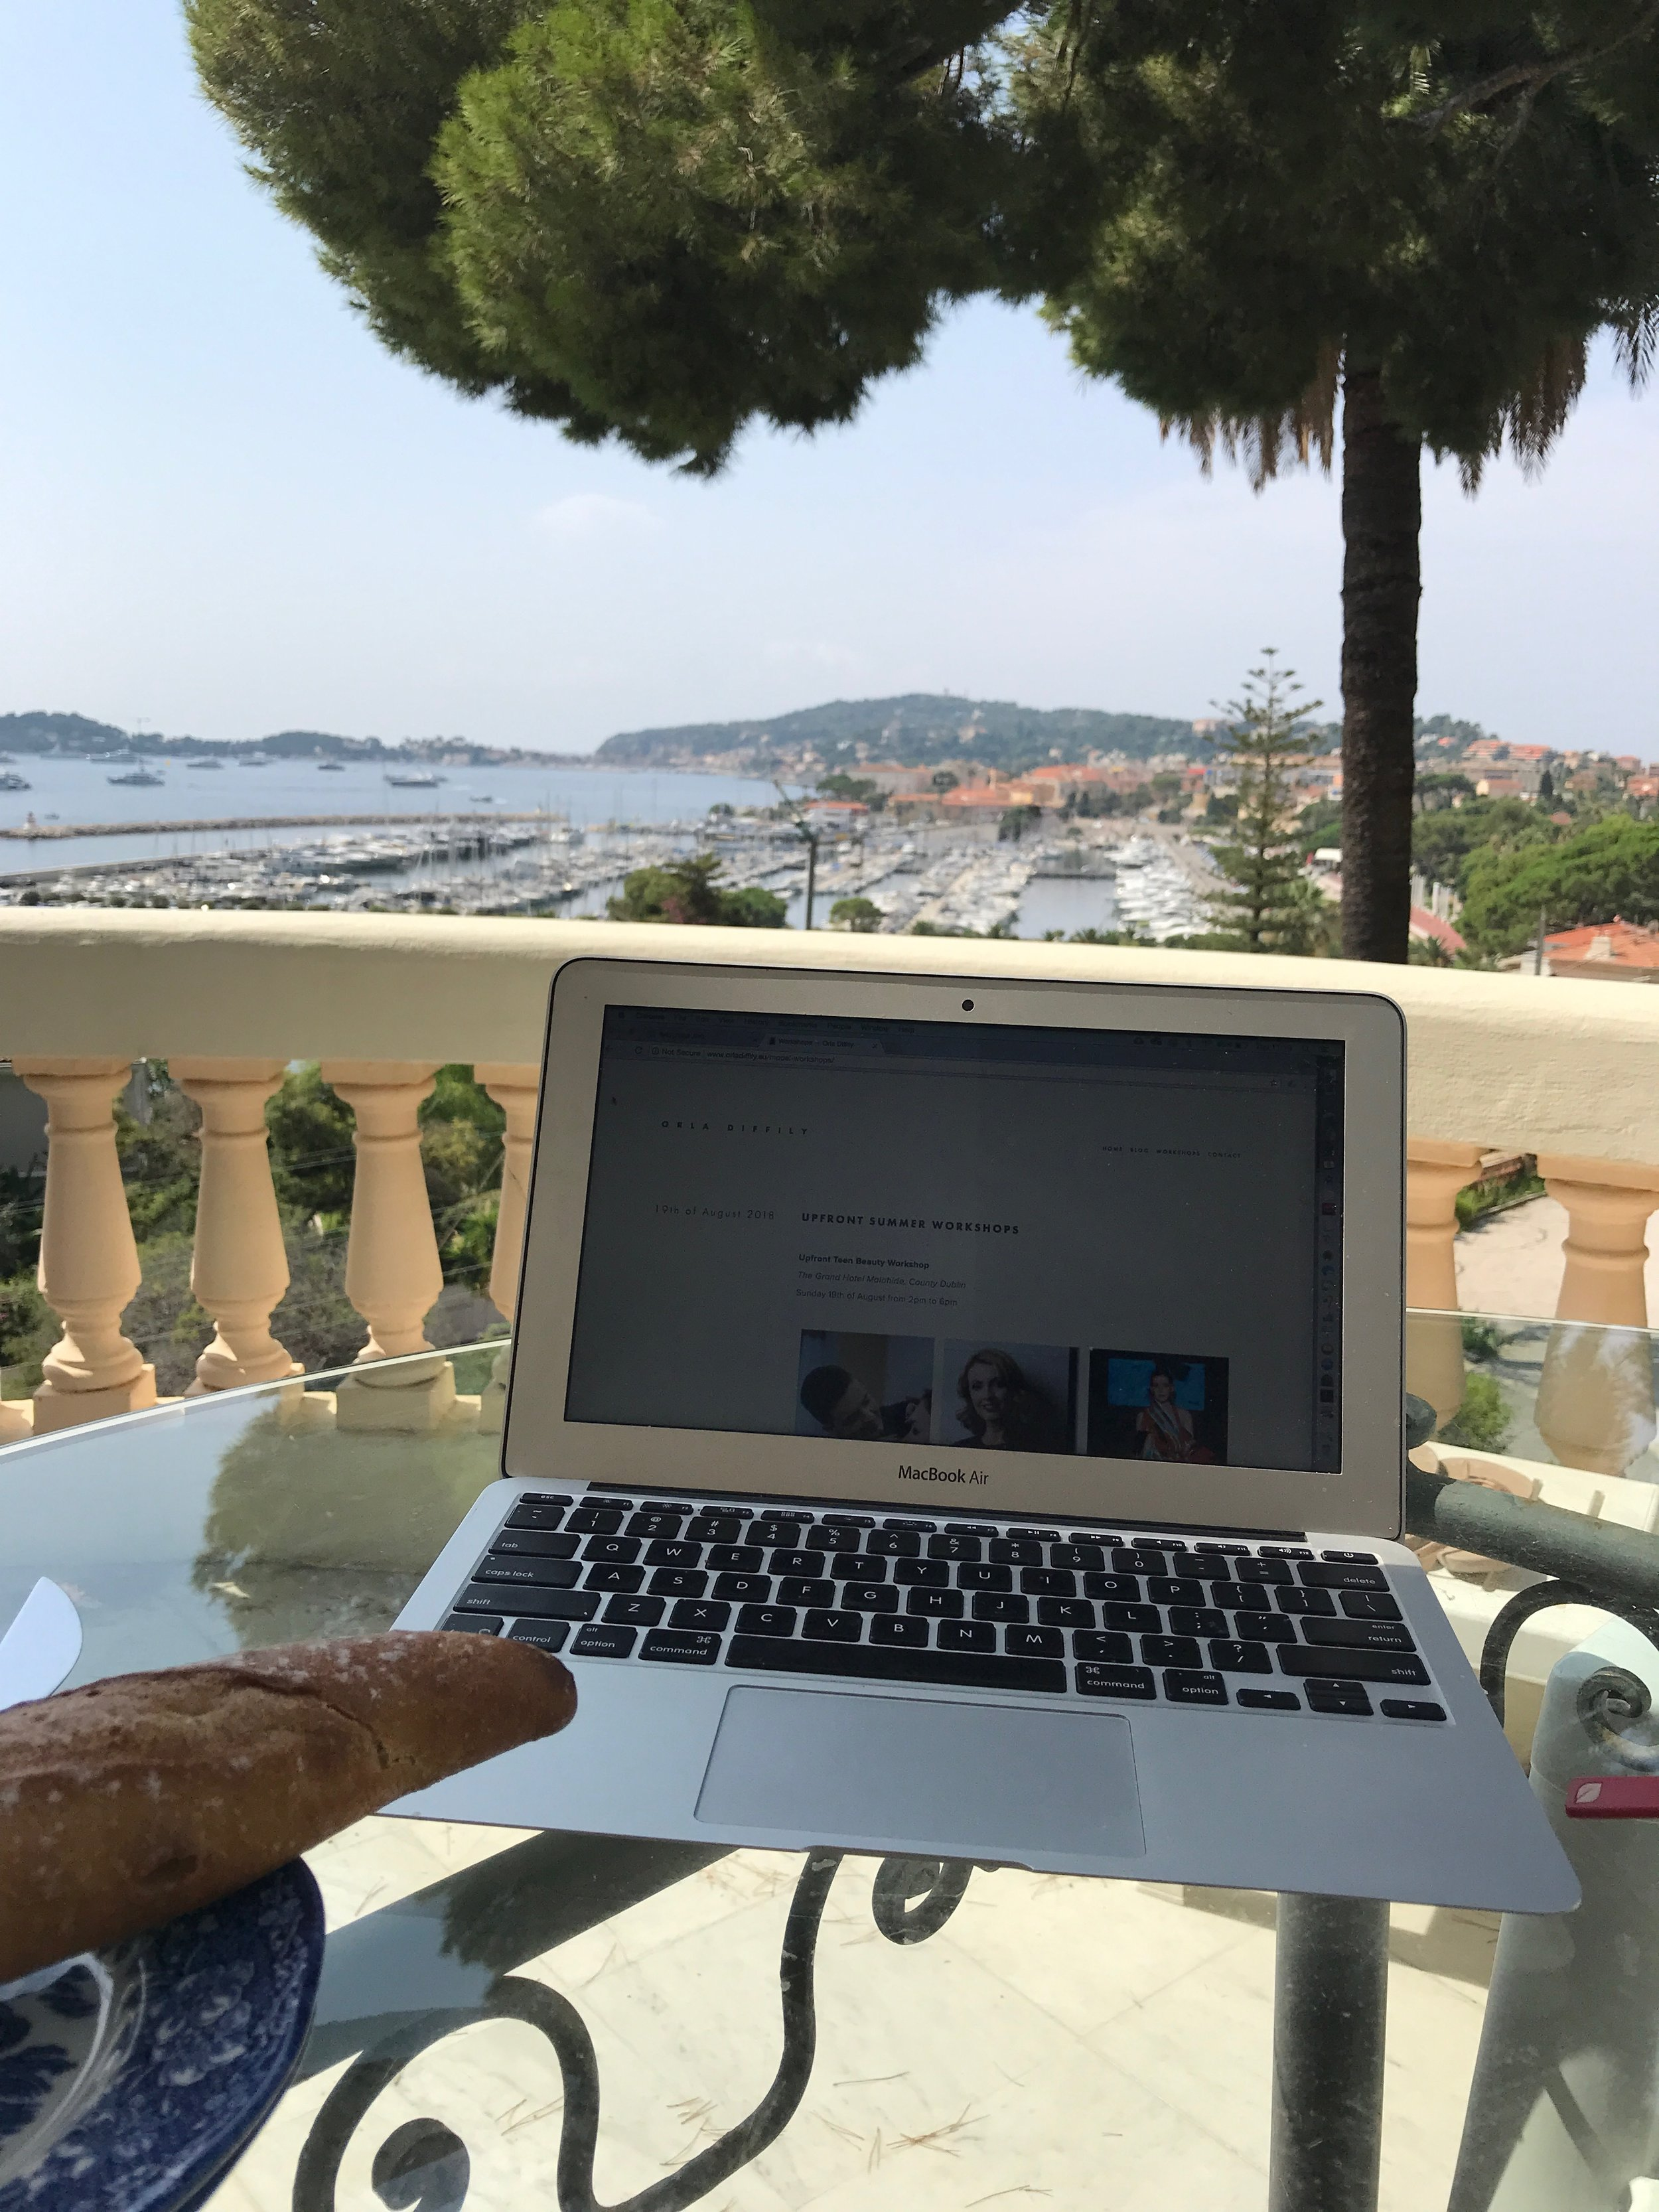 Room with a view  . . . I spent a lot of happy mornings tapping away on the Macbook overlooking Beaulieu-Sur-Mer.